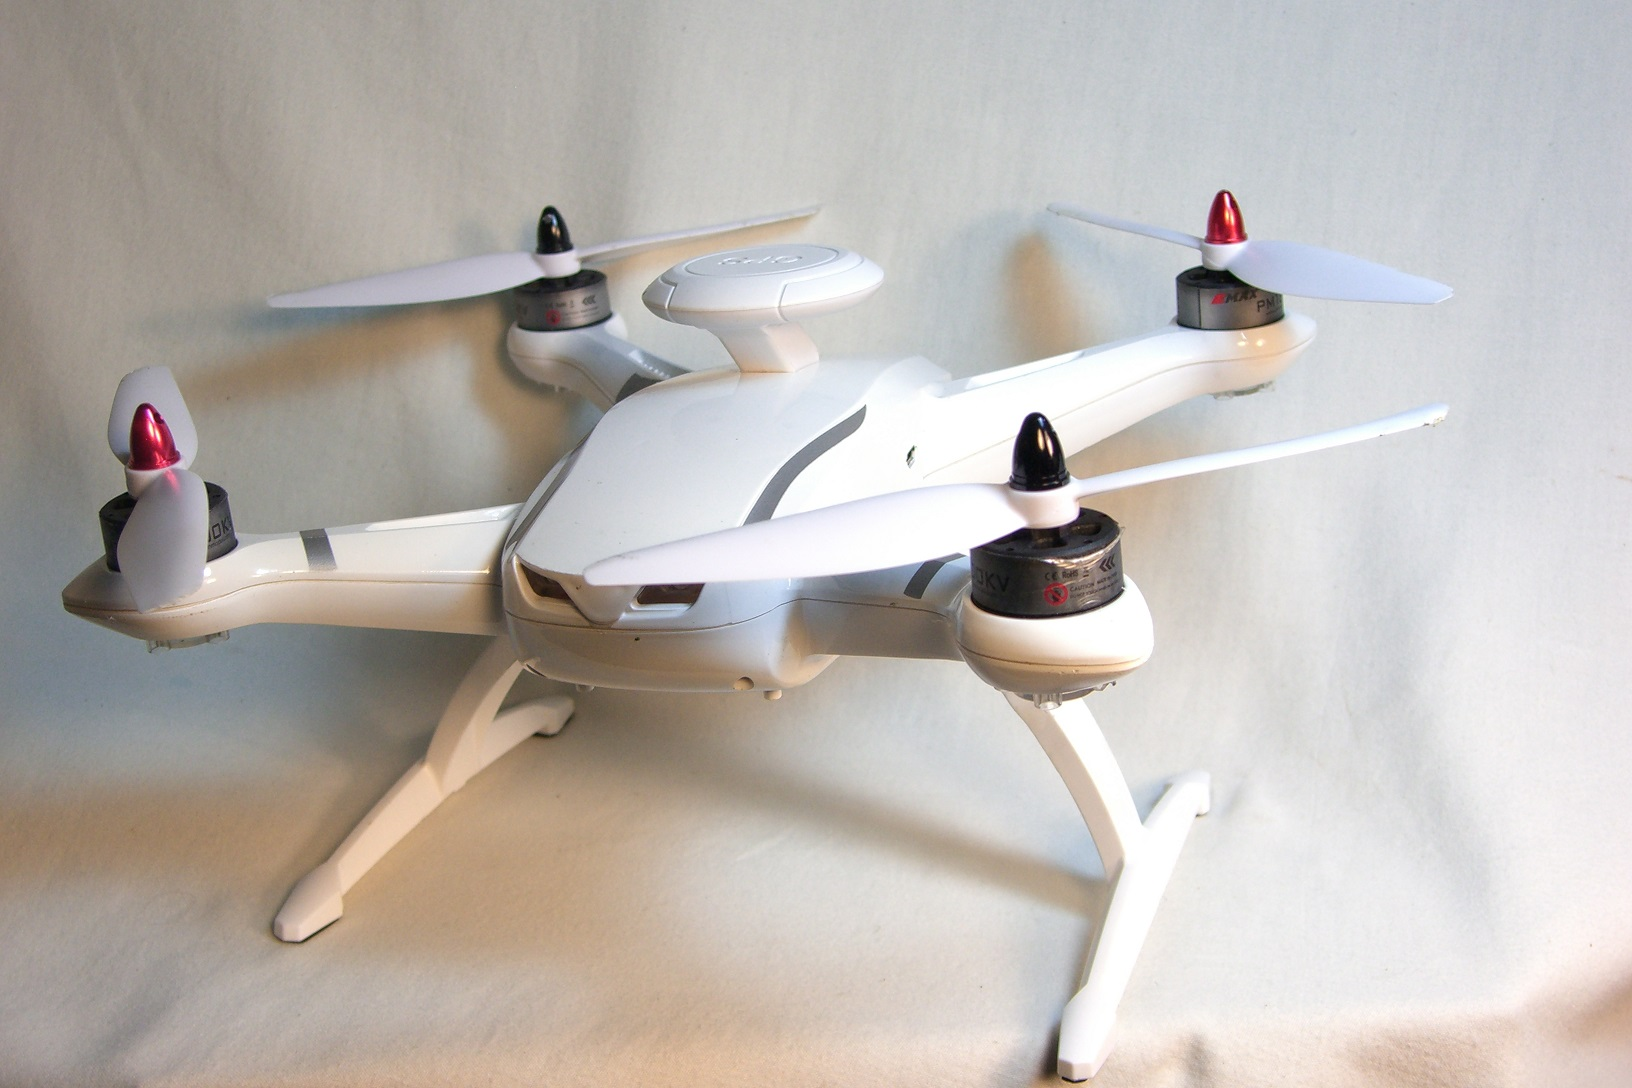 Syma X9 Flying Car Drone   Dronereview